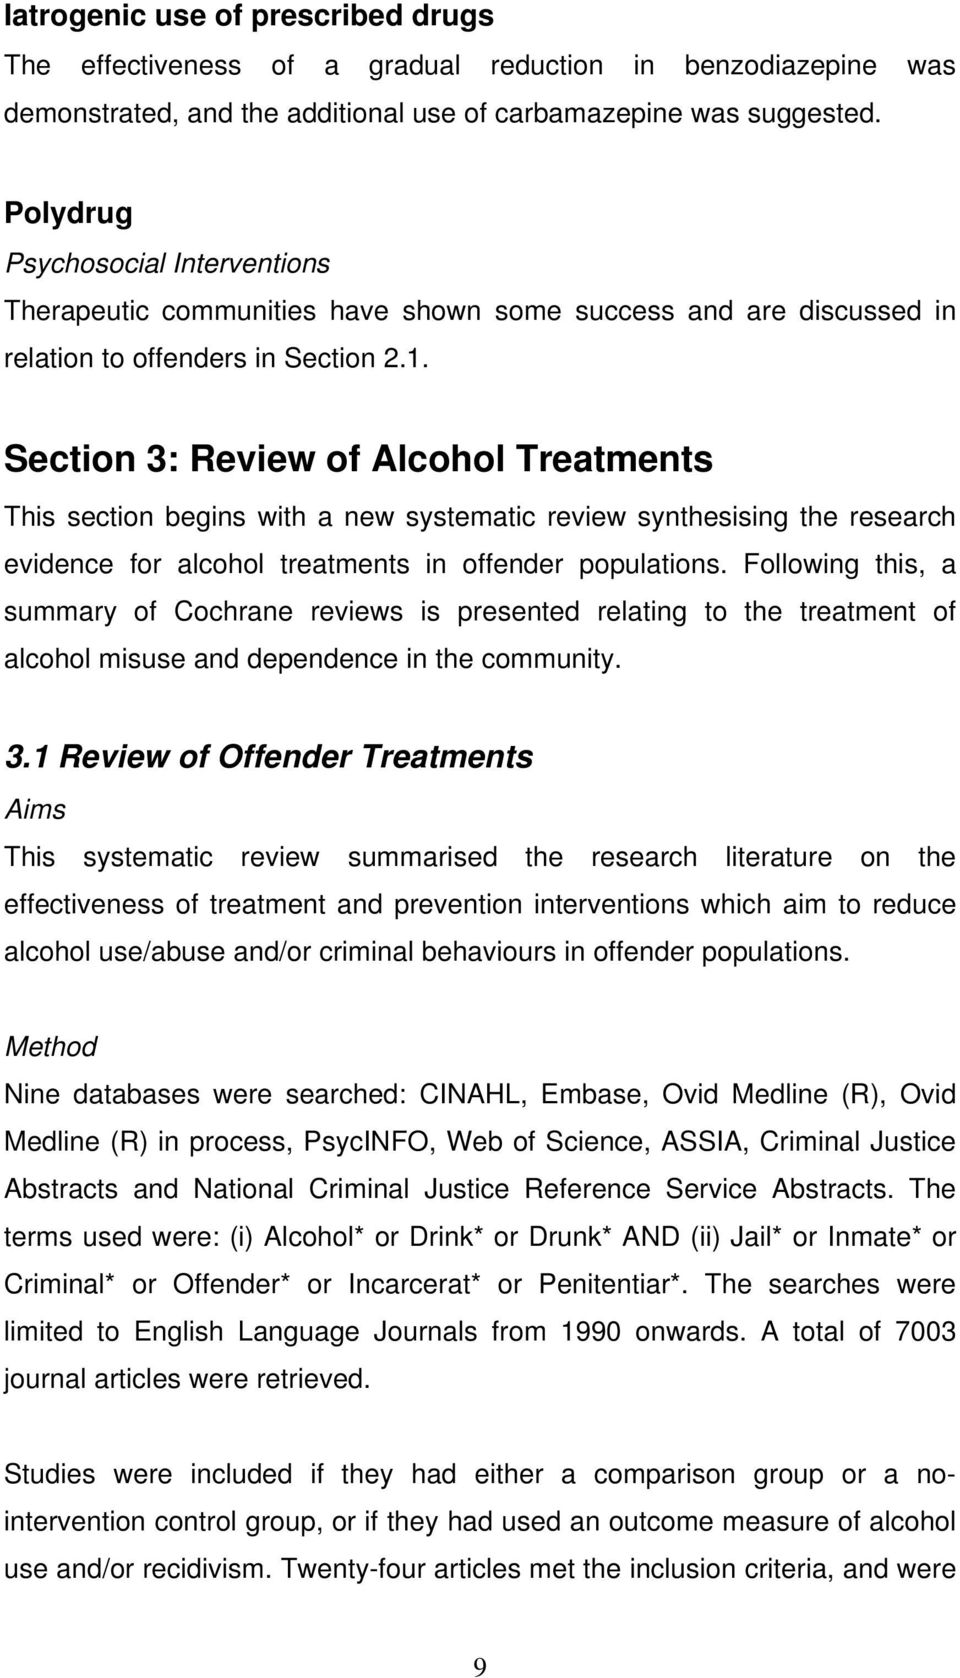 Section 3: Review of Alcohol Treatments This section begins with a new systematic review synthesising the research evidence for alcohol treatments in offender populations.